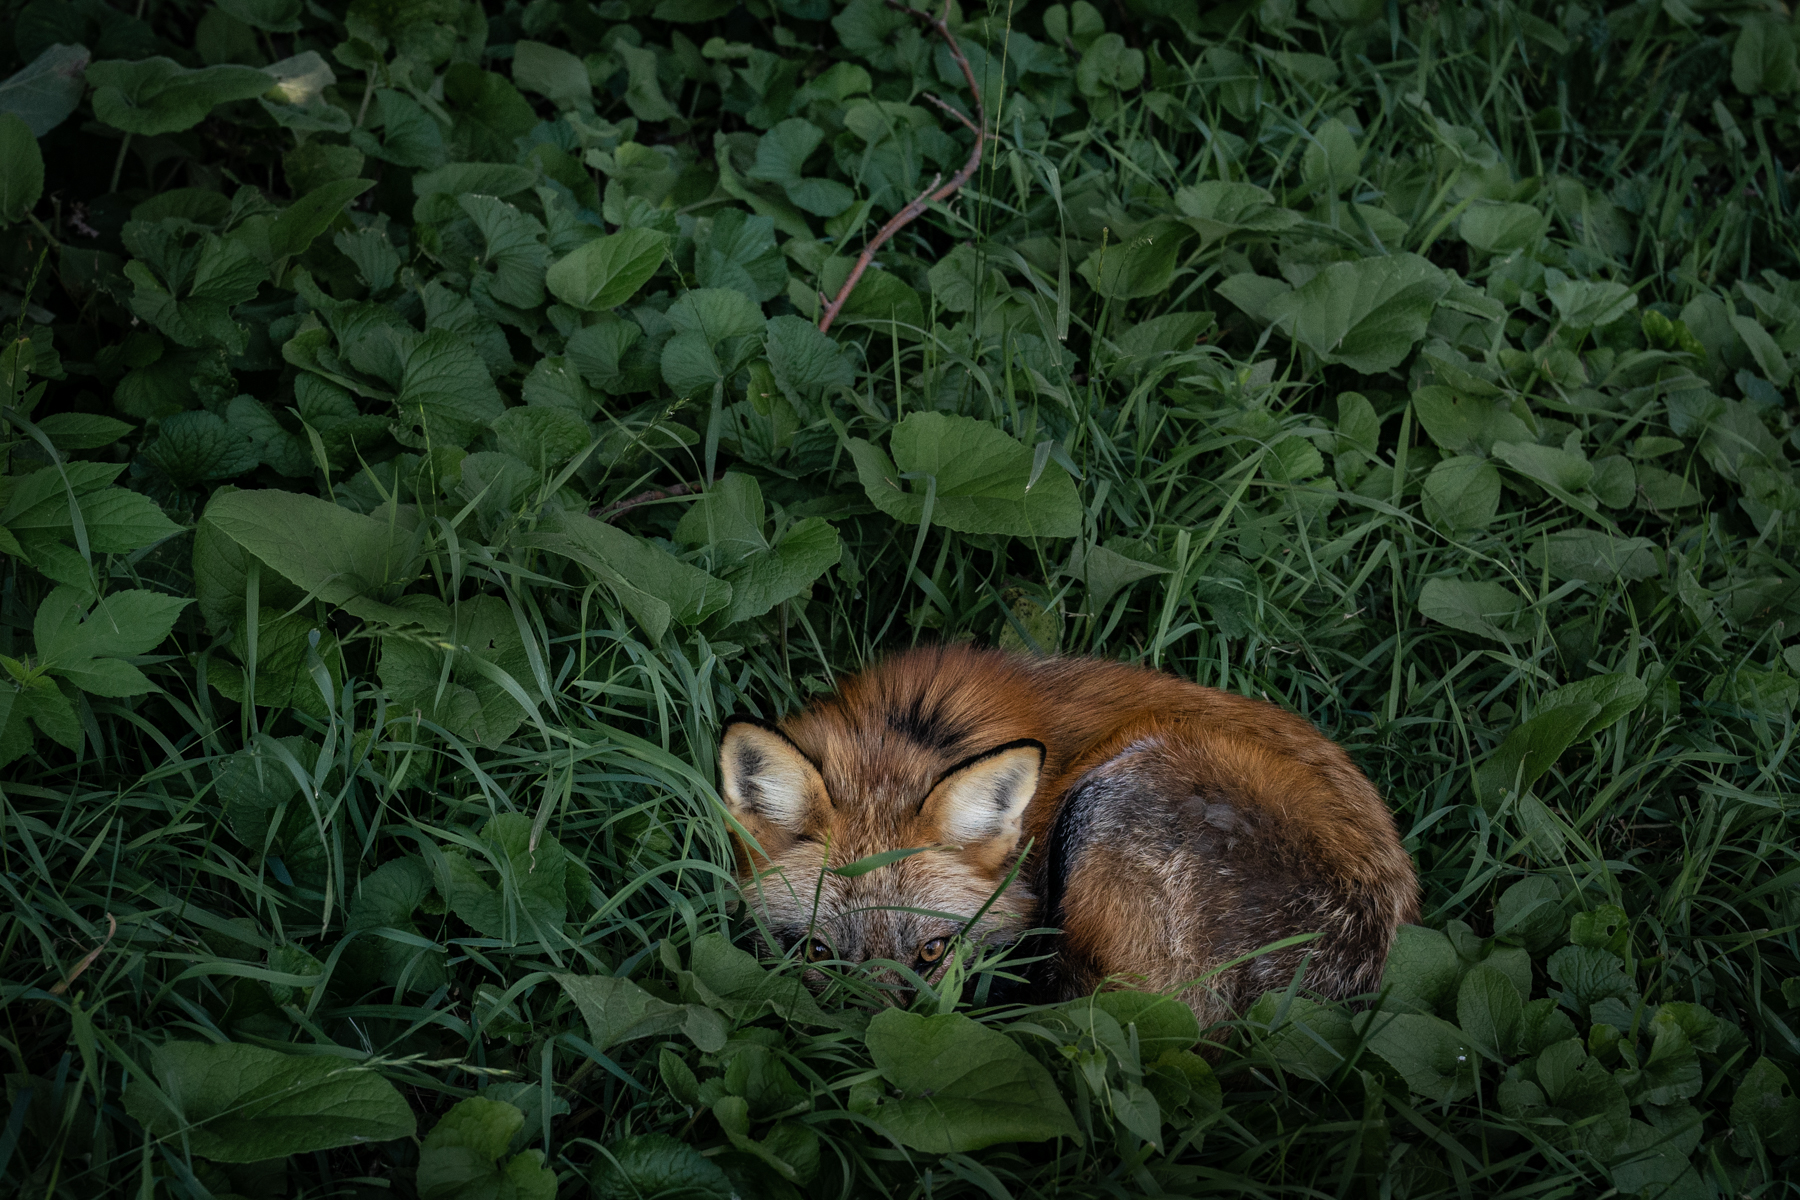 Many of the foxes, including Thystle, relax in the heat of the day by curling up in a cool spot in the grass.